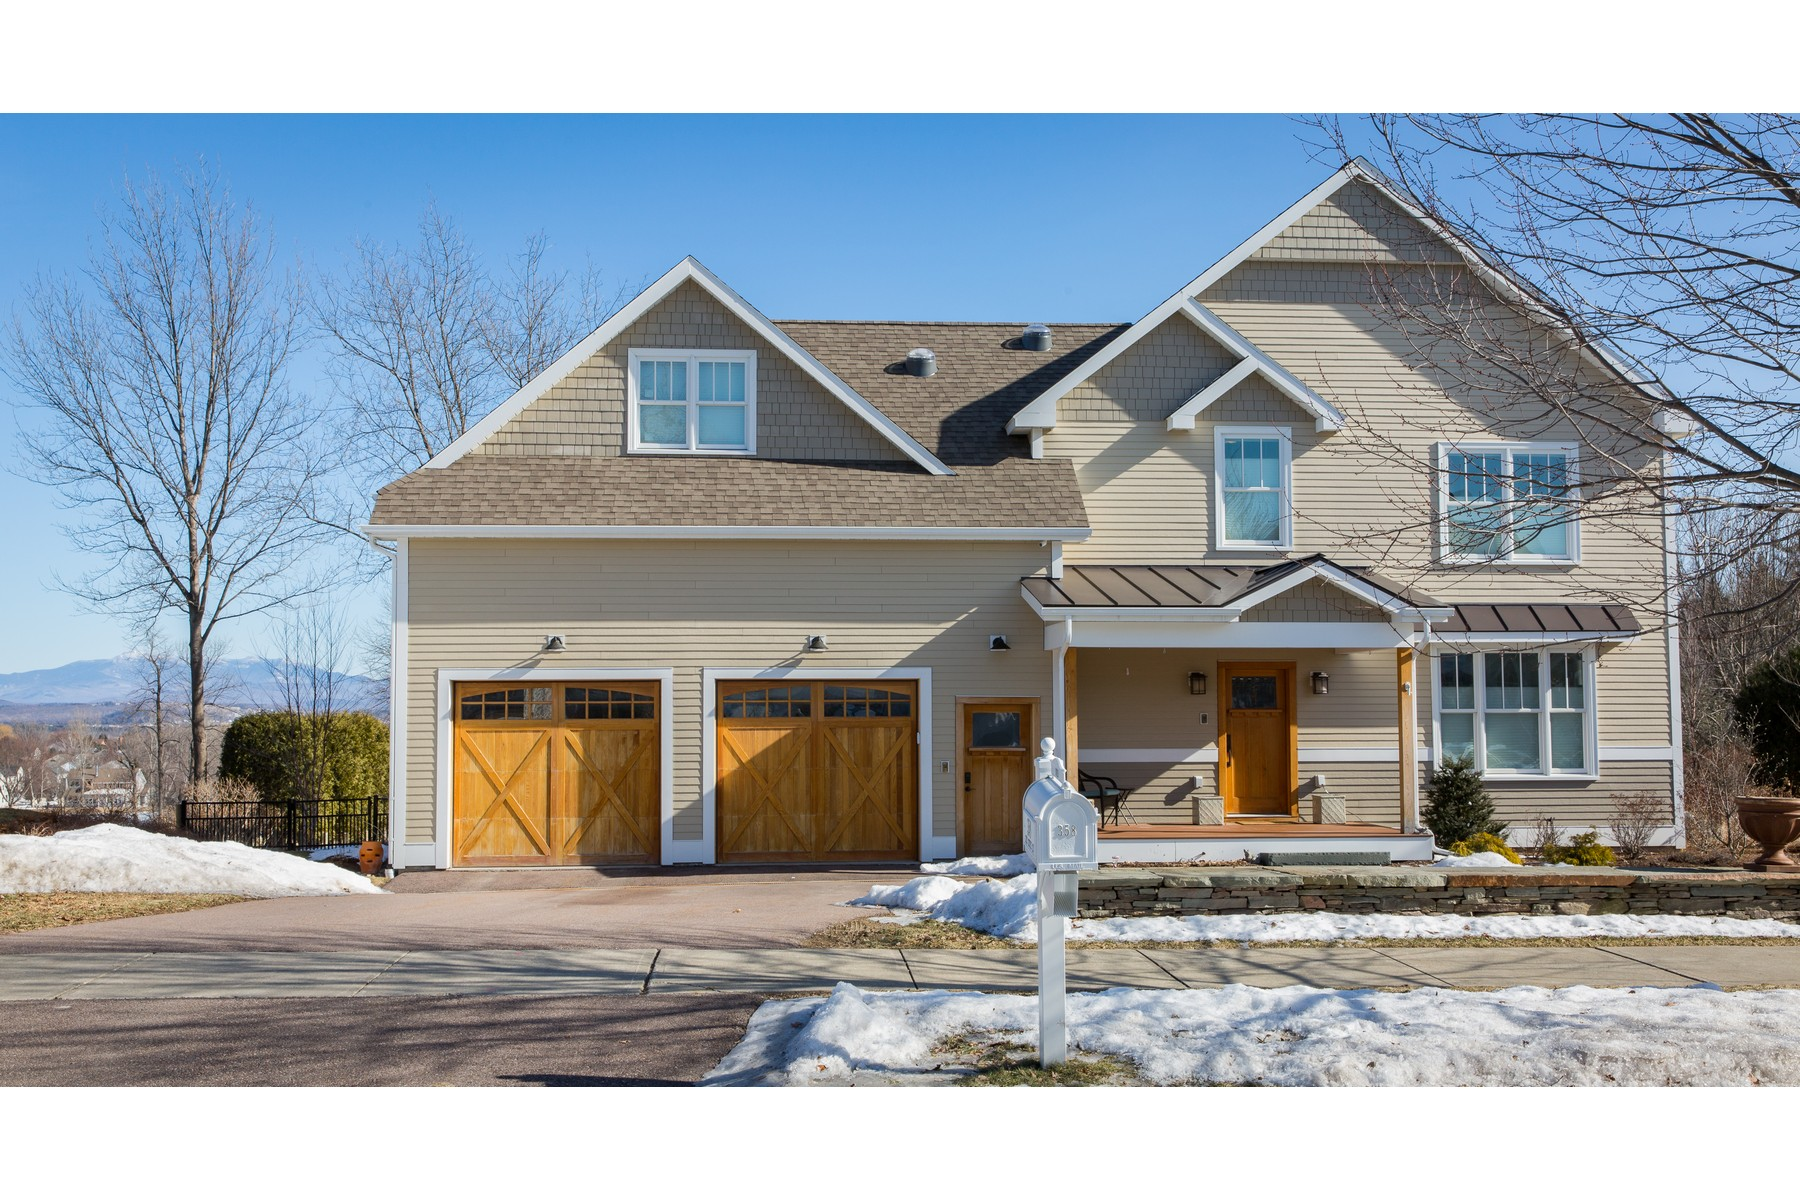 Single Family Home for Sale at 358 Golf Course Road, South Burlington 358 Golf Course Rd South Burlington, Vermont 05403 United States